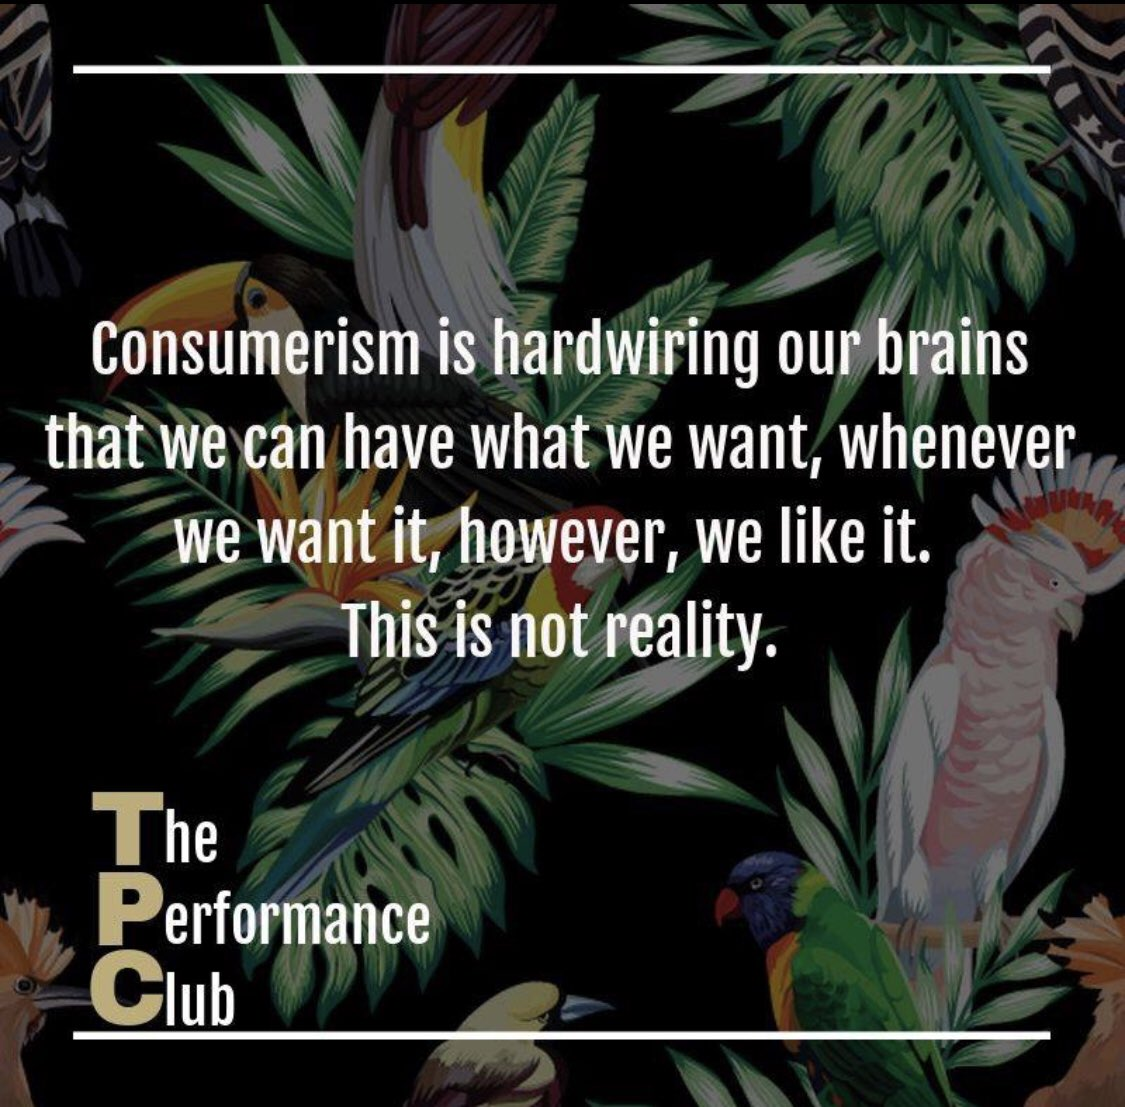 Do you truly understand, and are you fully aware of things you are engaging your brain with on a daily basis?    #performance #educateyourself #coaching #mentalhealth #livethebestlife #consumerism #harmful #fakelife #realitycheck #demands #intolerance #neuroscience